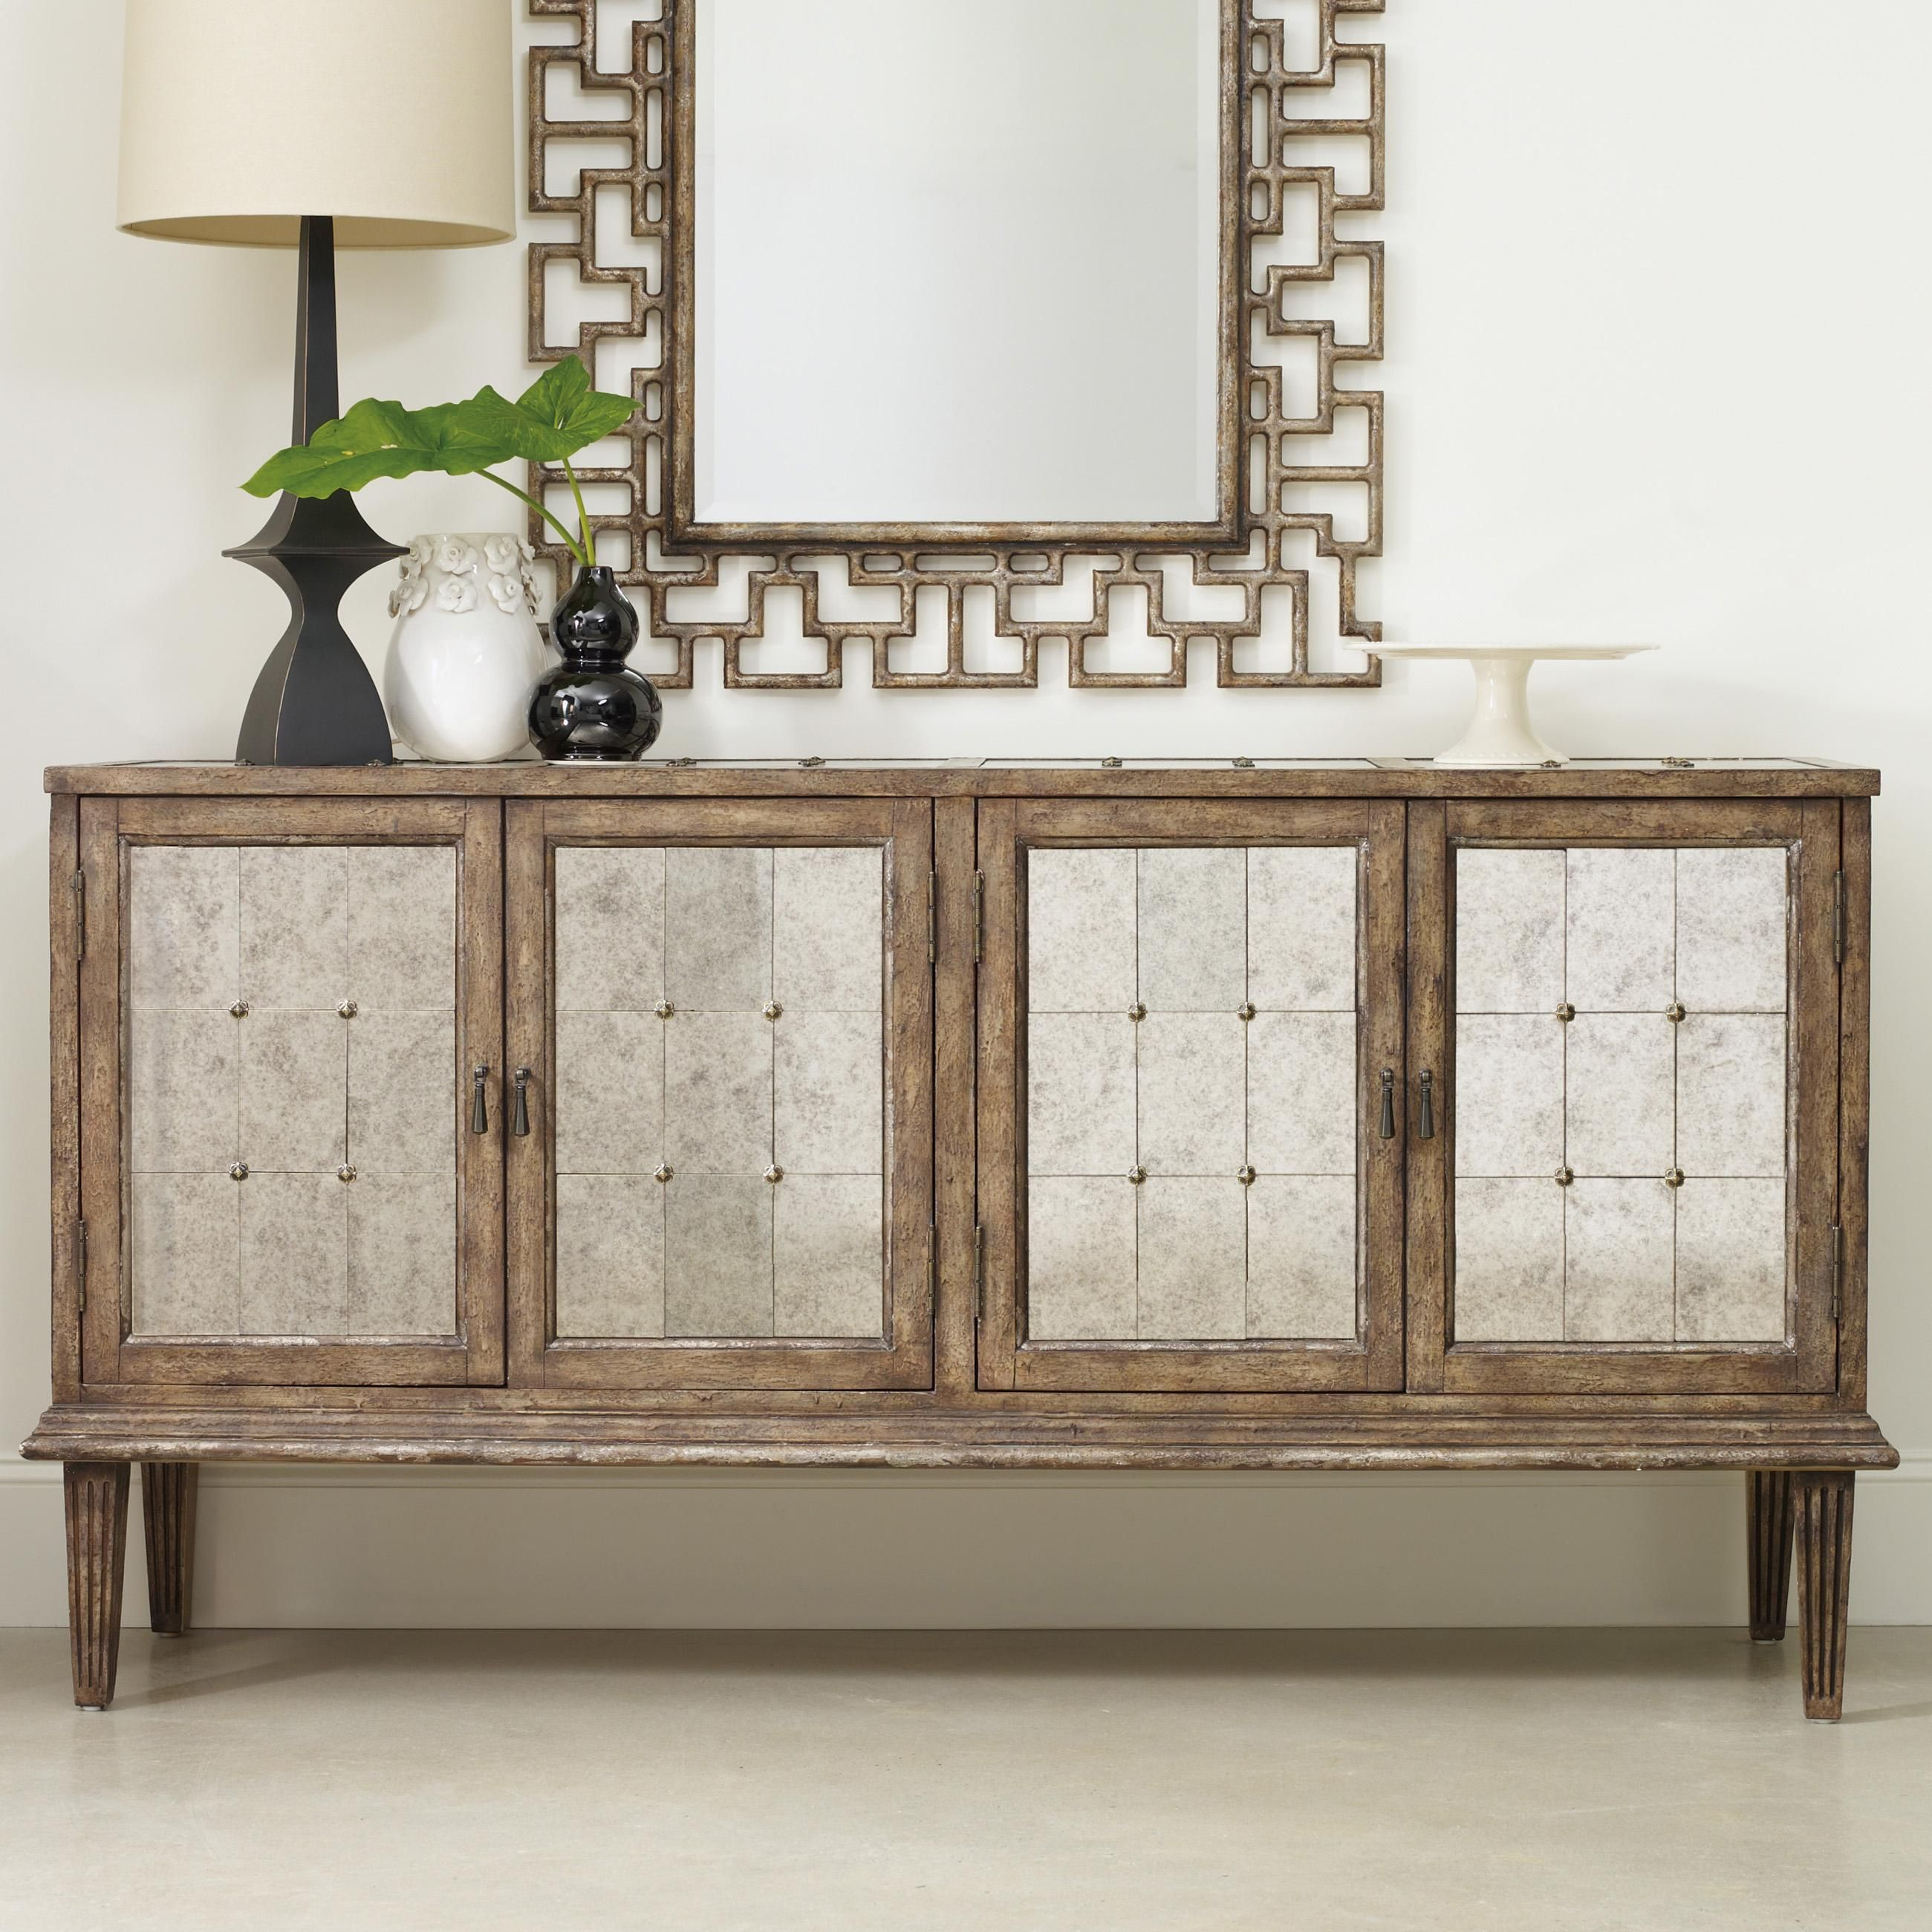 Marvelous Mélange DeVera Mirrored Console By Hooker Furniture